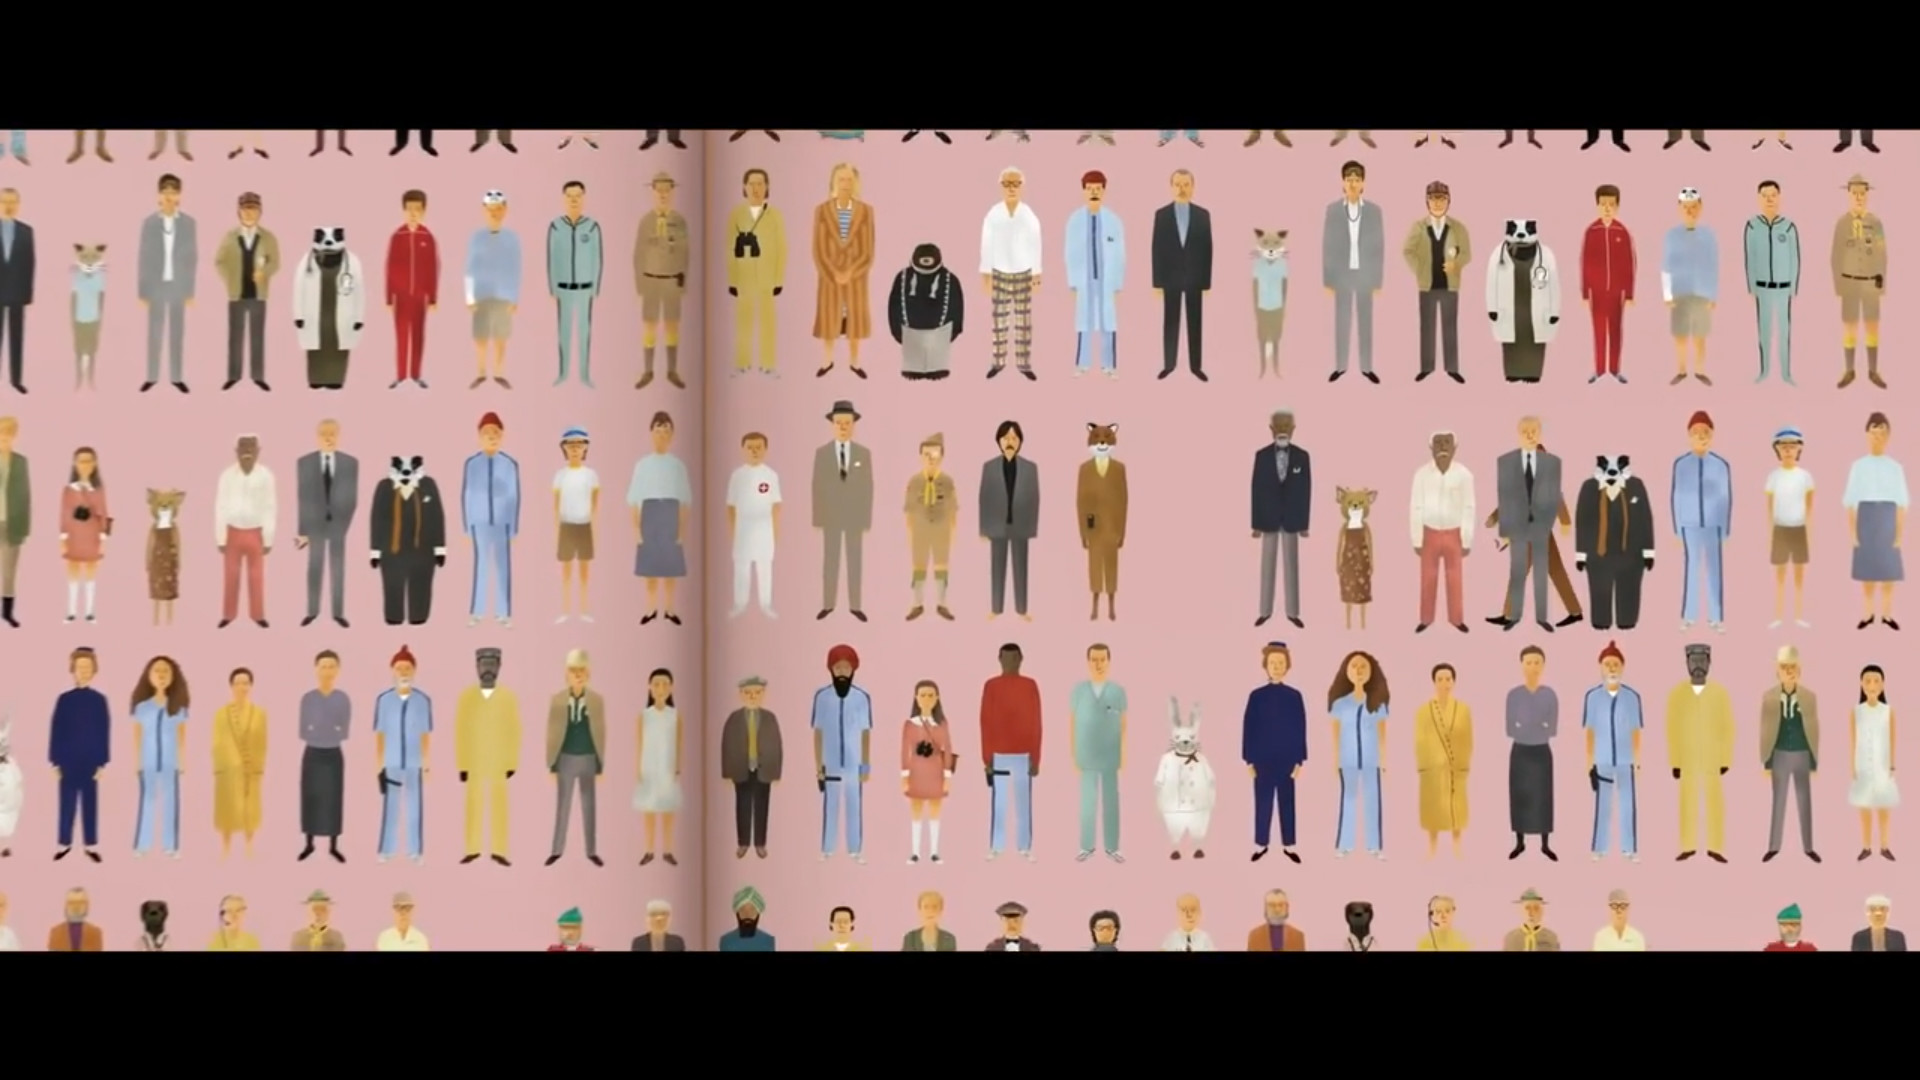 Wes Anderson Rushmore Wallpaper -wes-anderson-collection-5